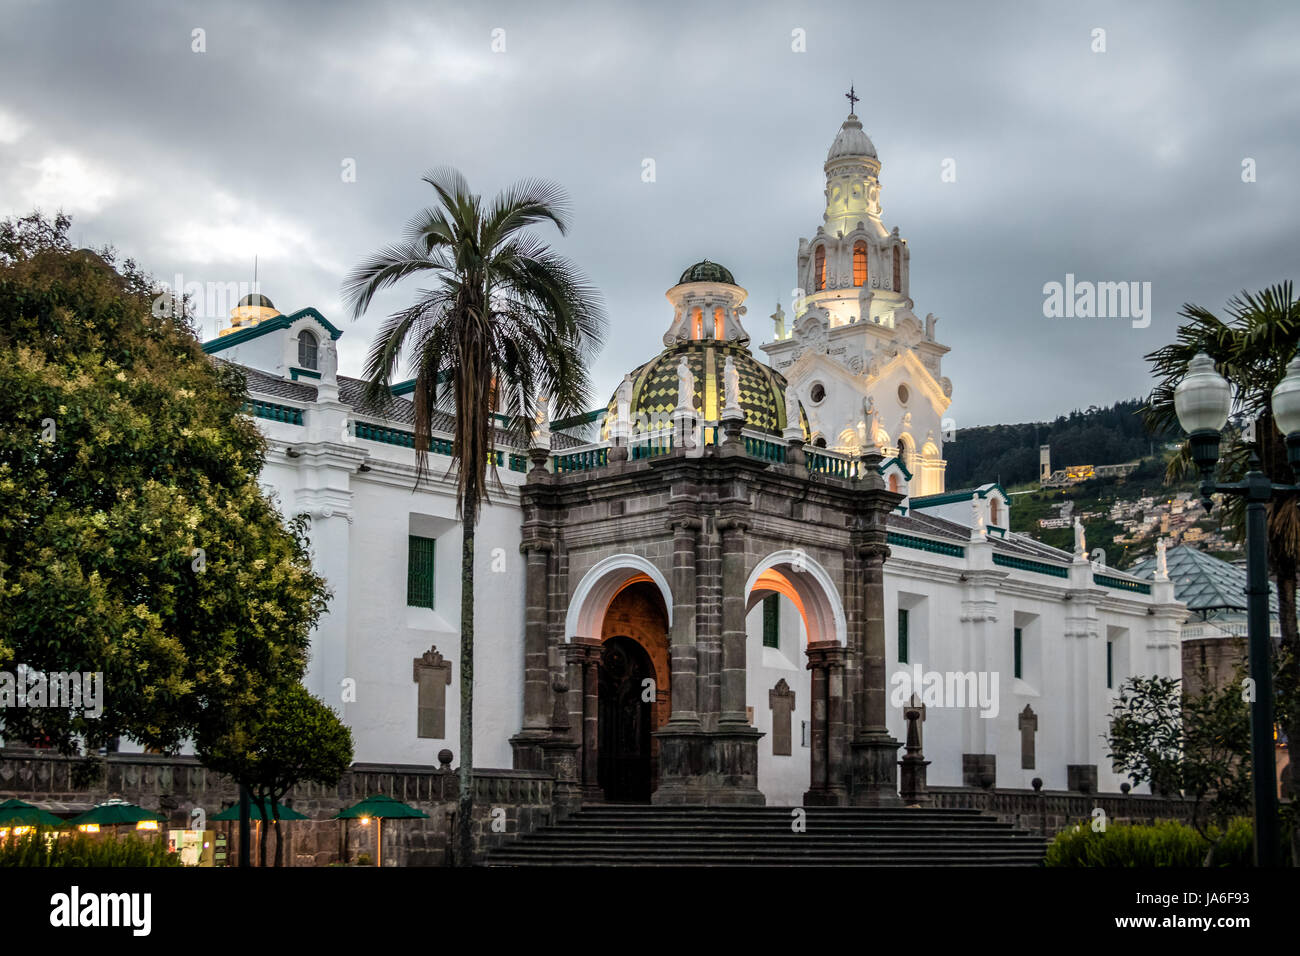 Plaza Grande and Metropolitan Cathedral - Quito, Ecuador - Stock Image